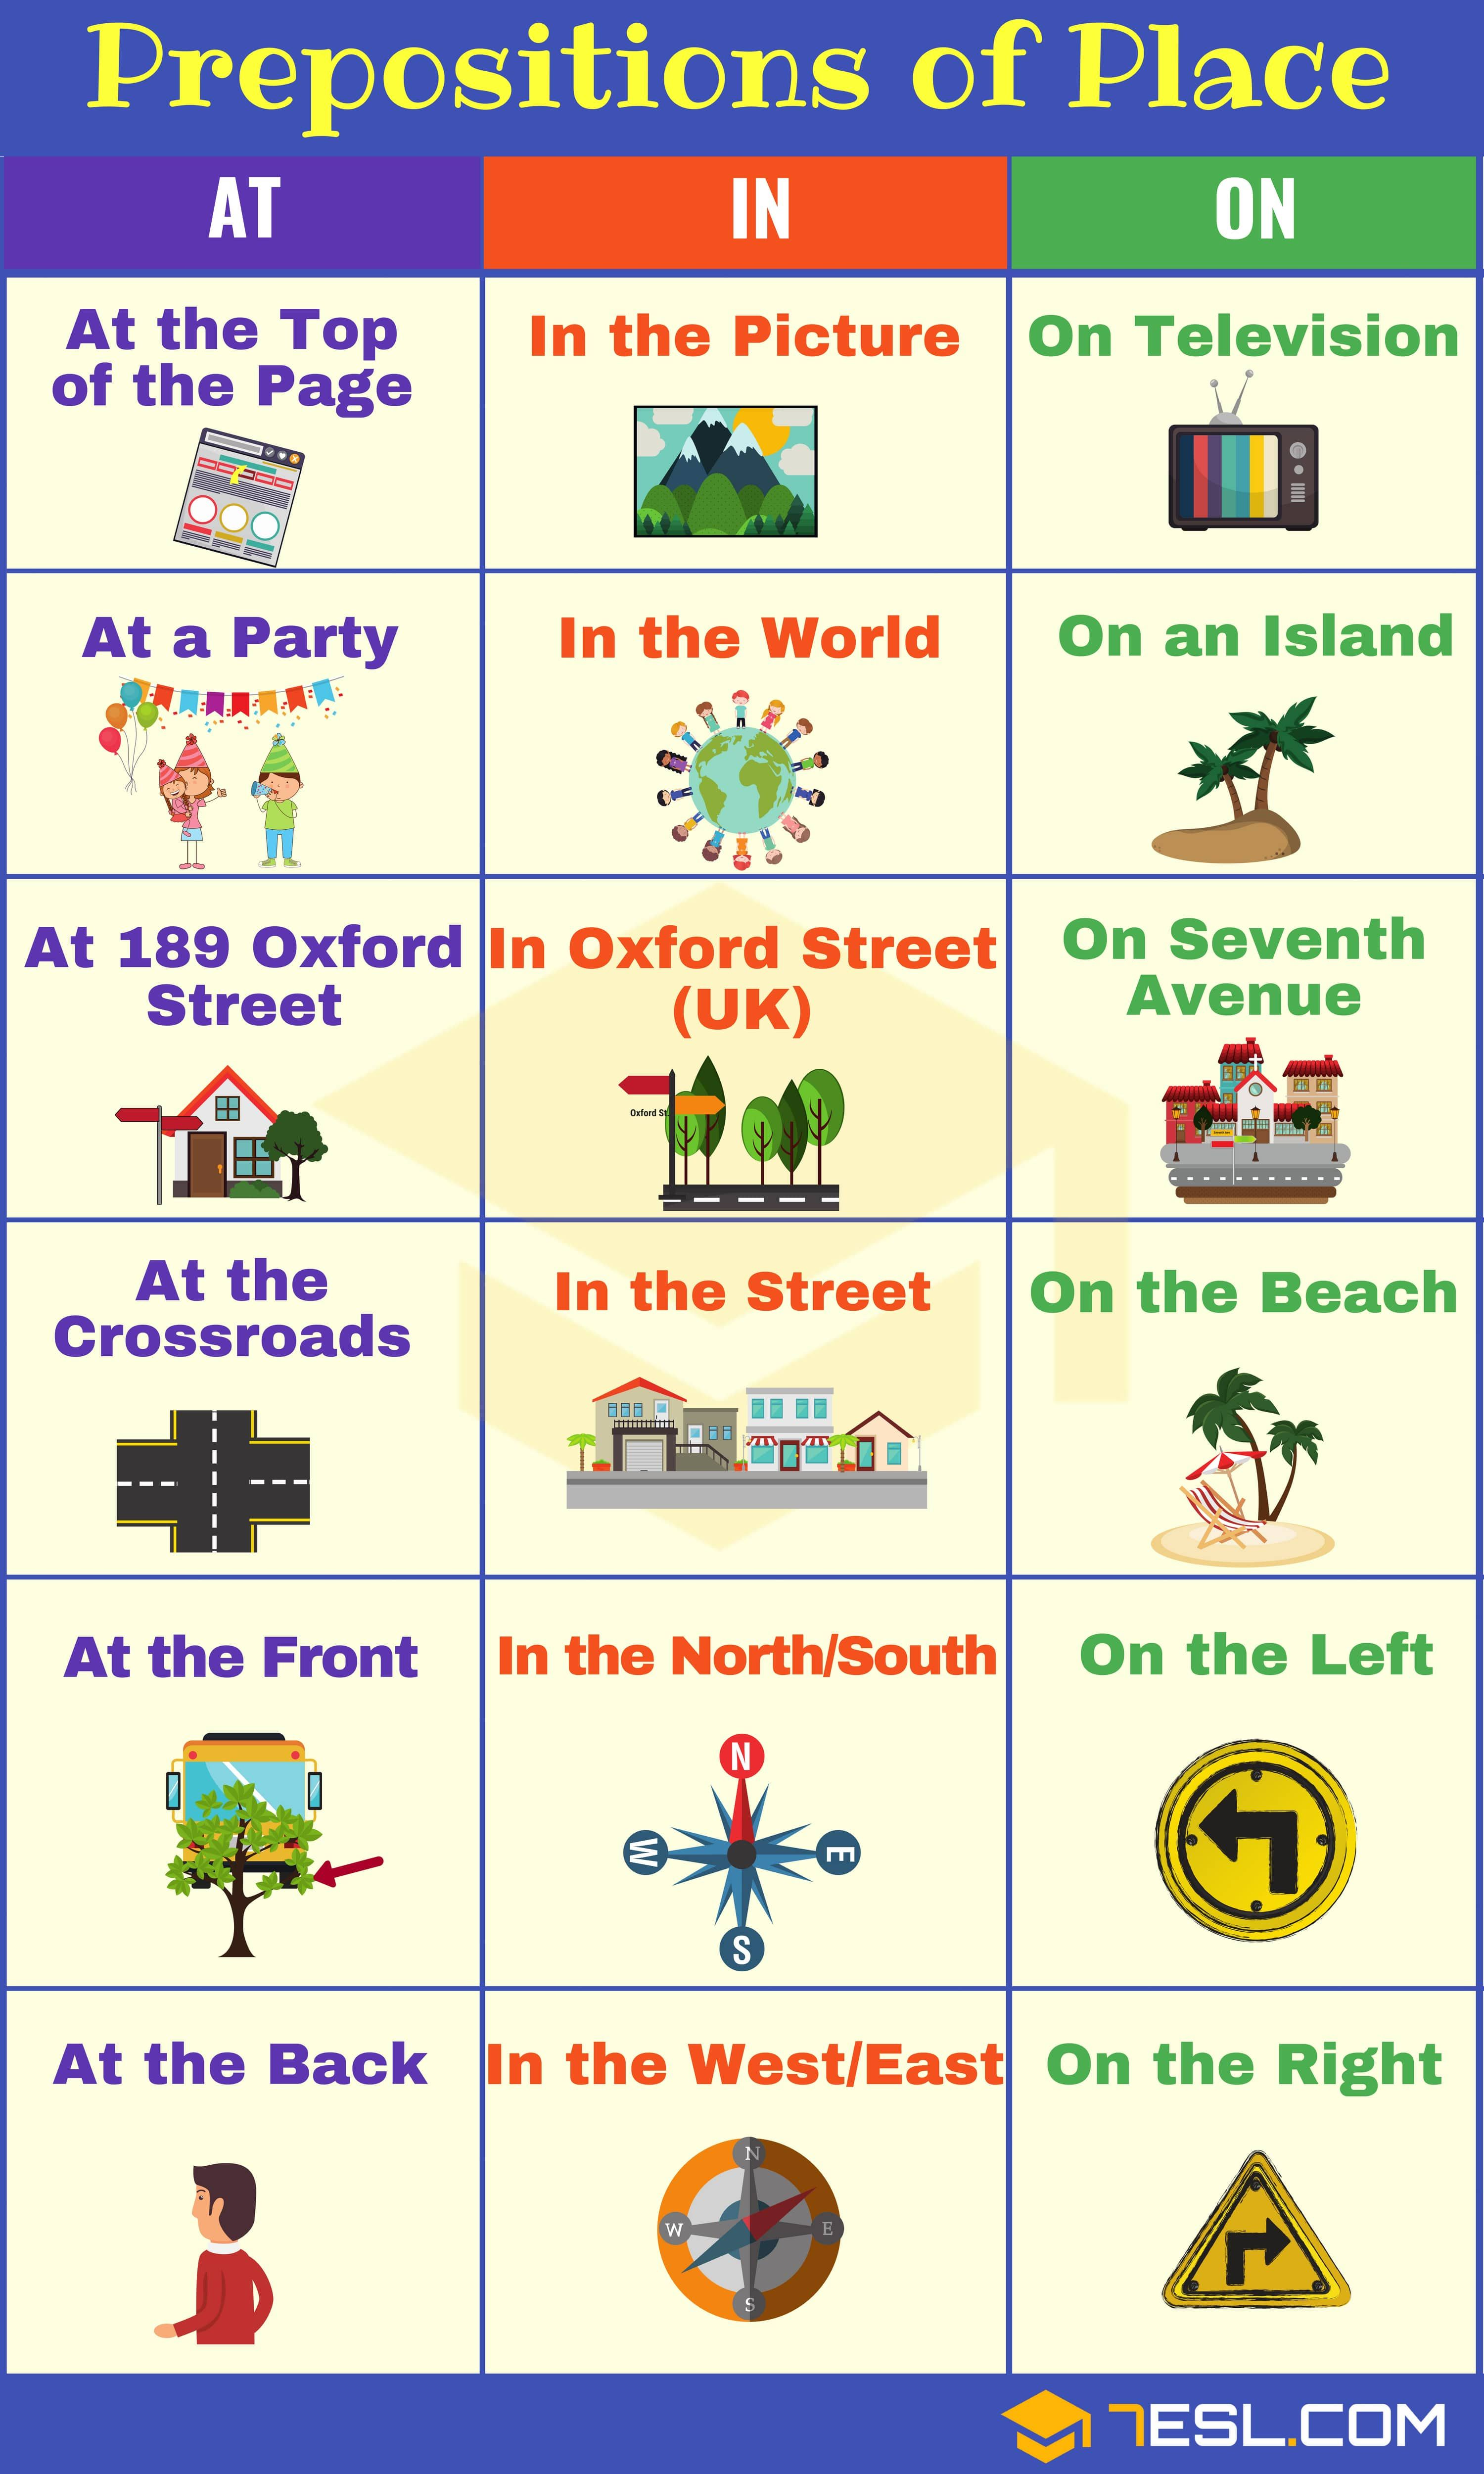 Prepositions Of Place Useful List Meaning Amp Examples